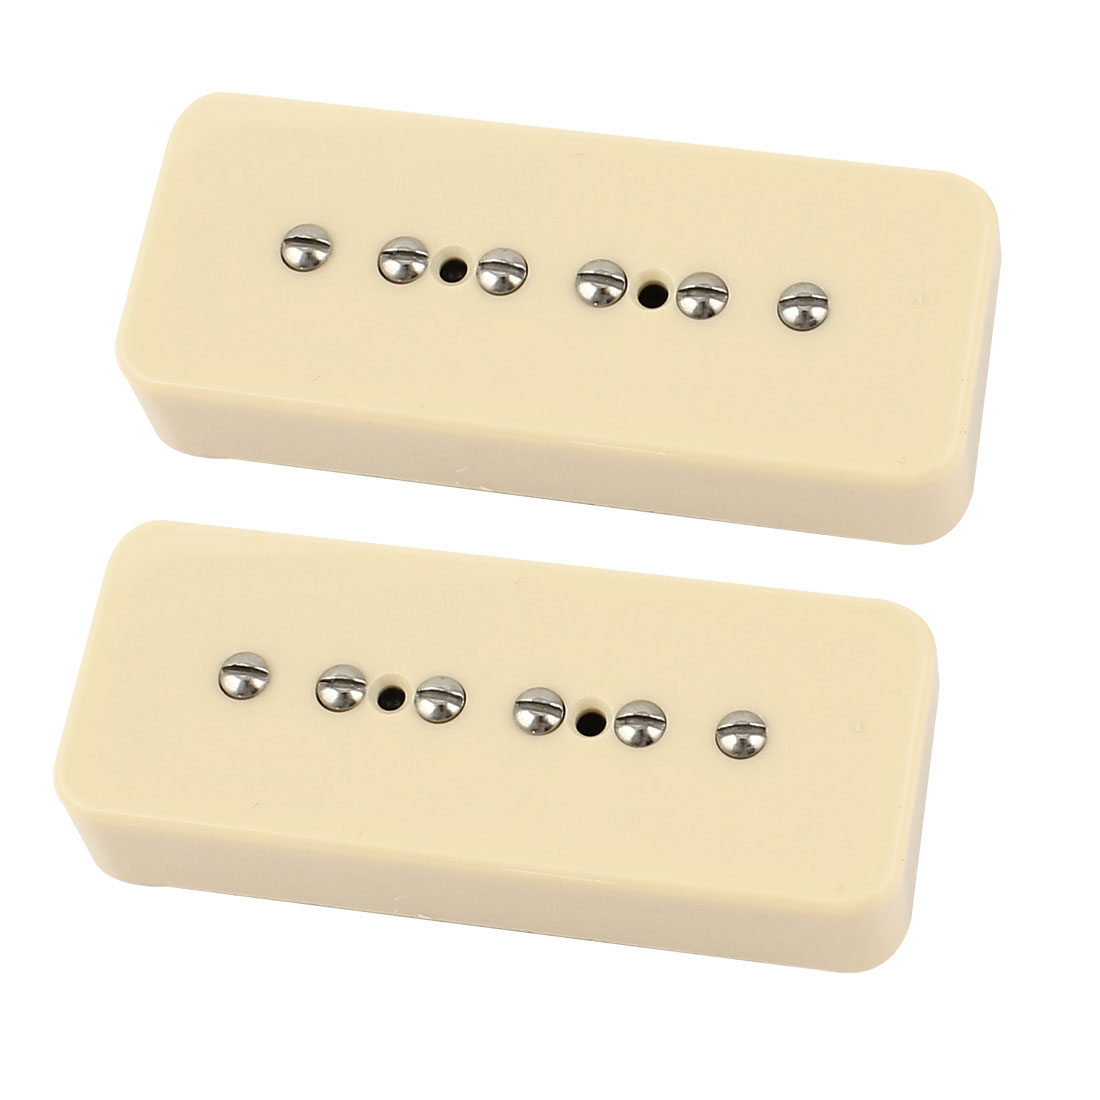 2 Pcs Electric Guitar Pickup Single Coil LP Soap Bar Pick-up Beige